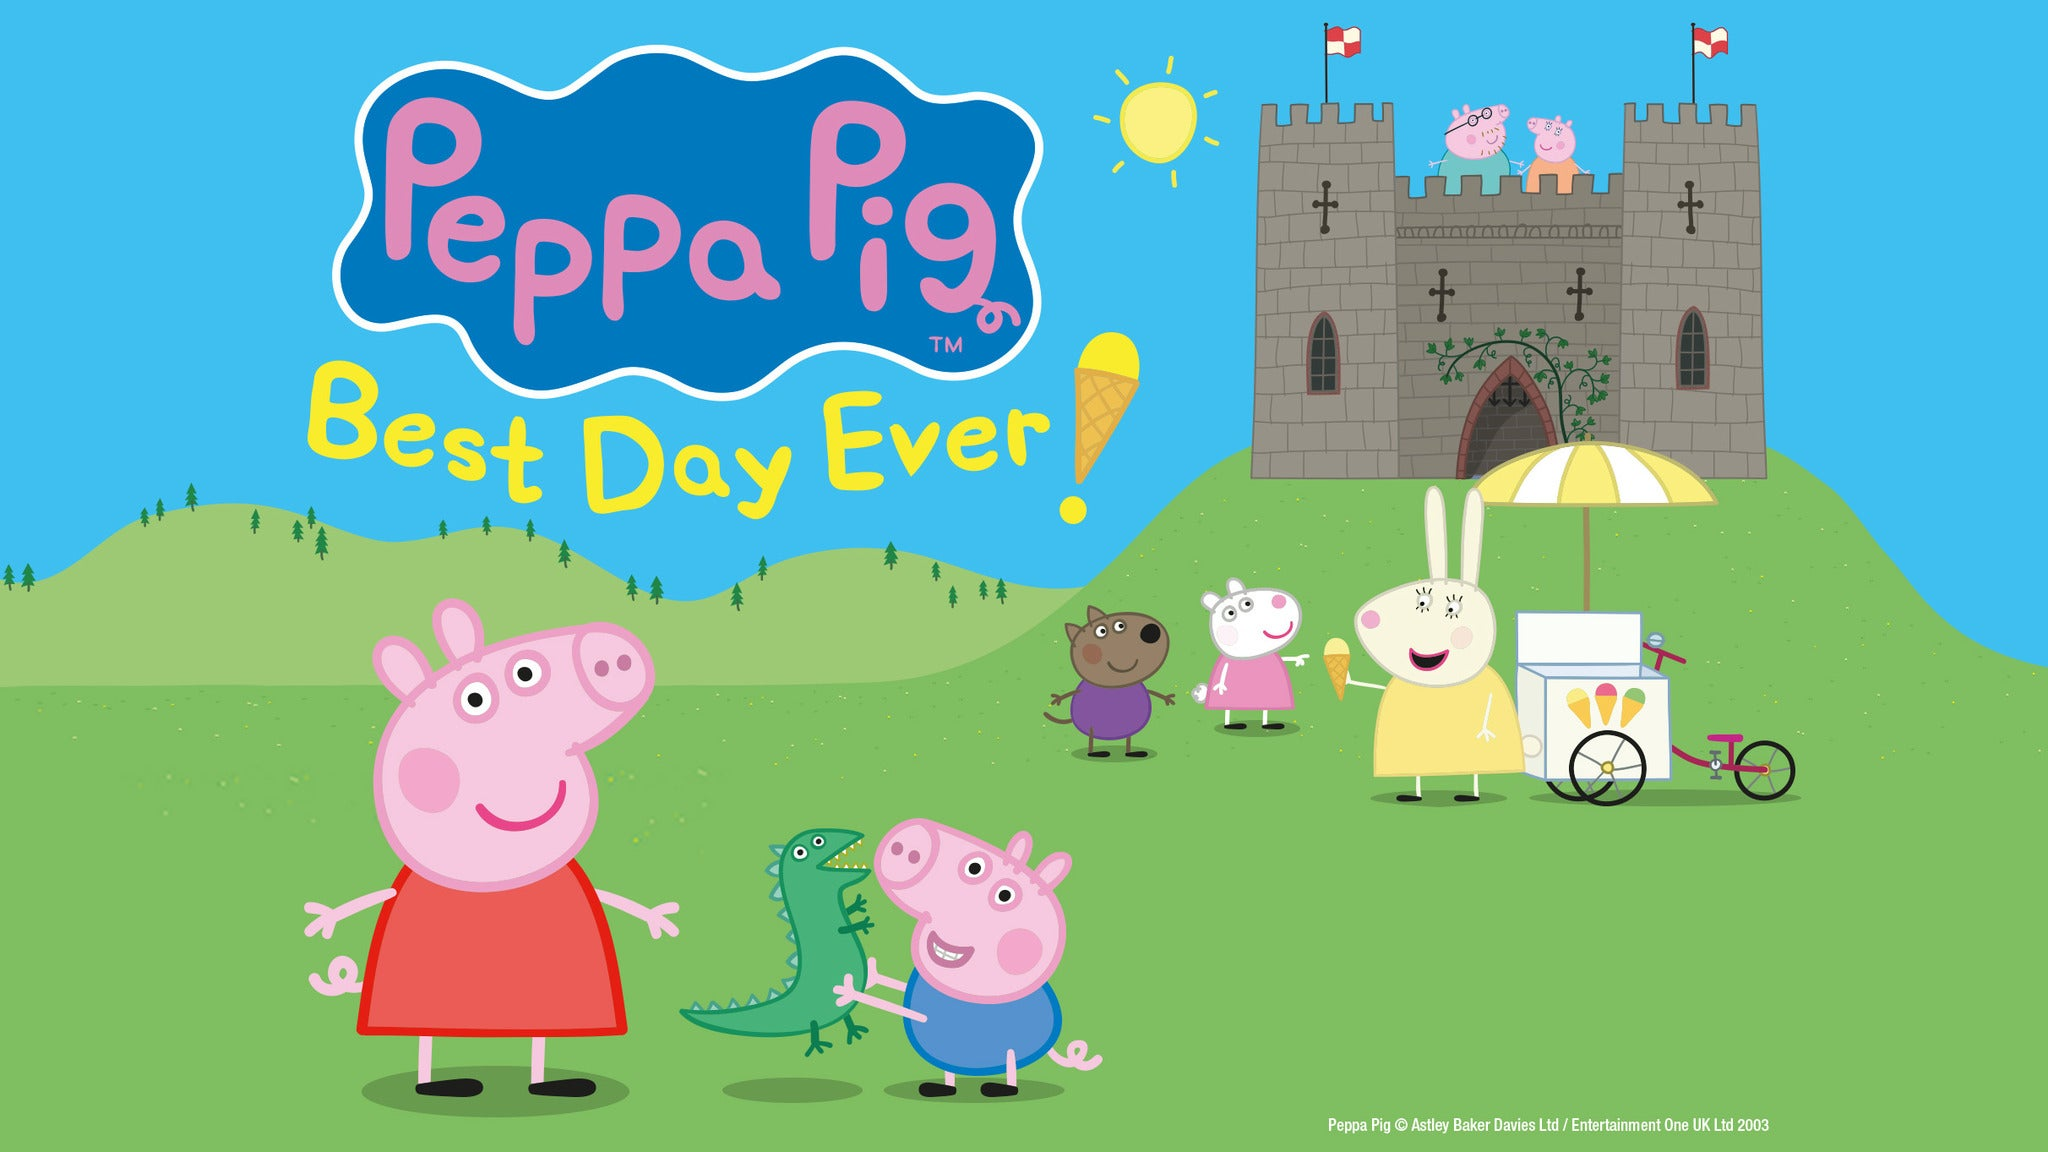 Peppa Pig Live! at Orpheum Theatre - Wichita KS